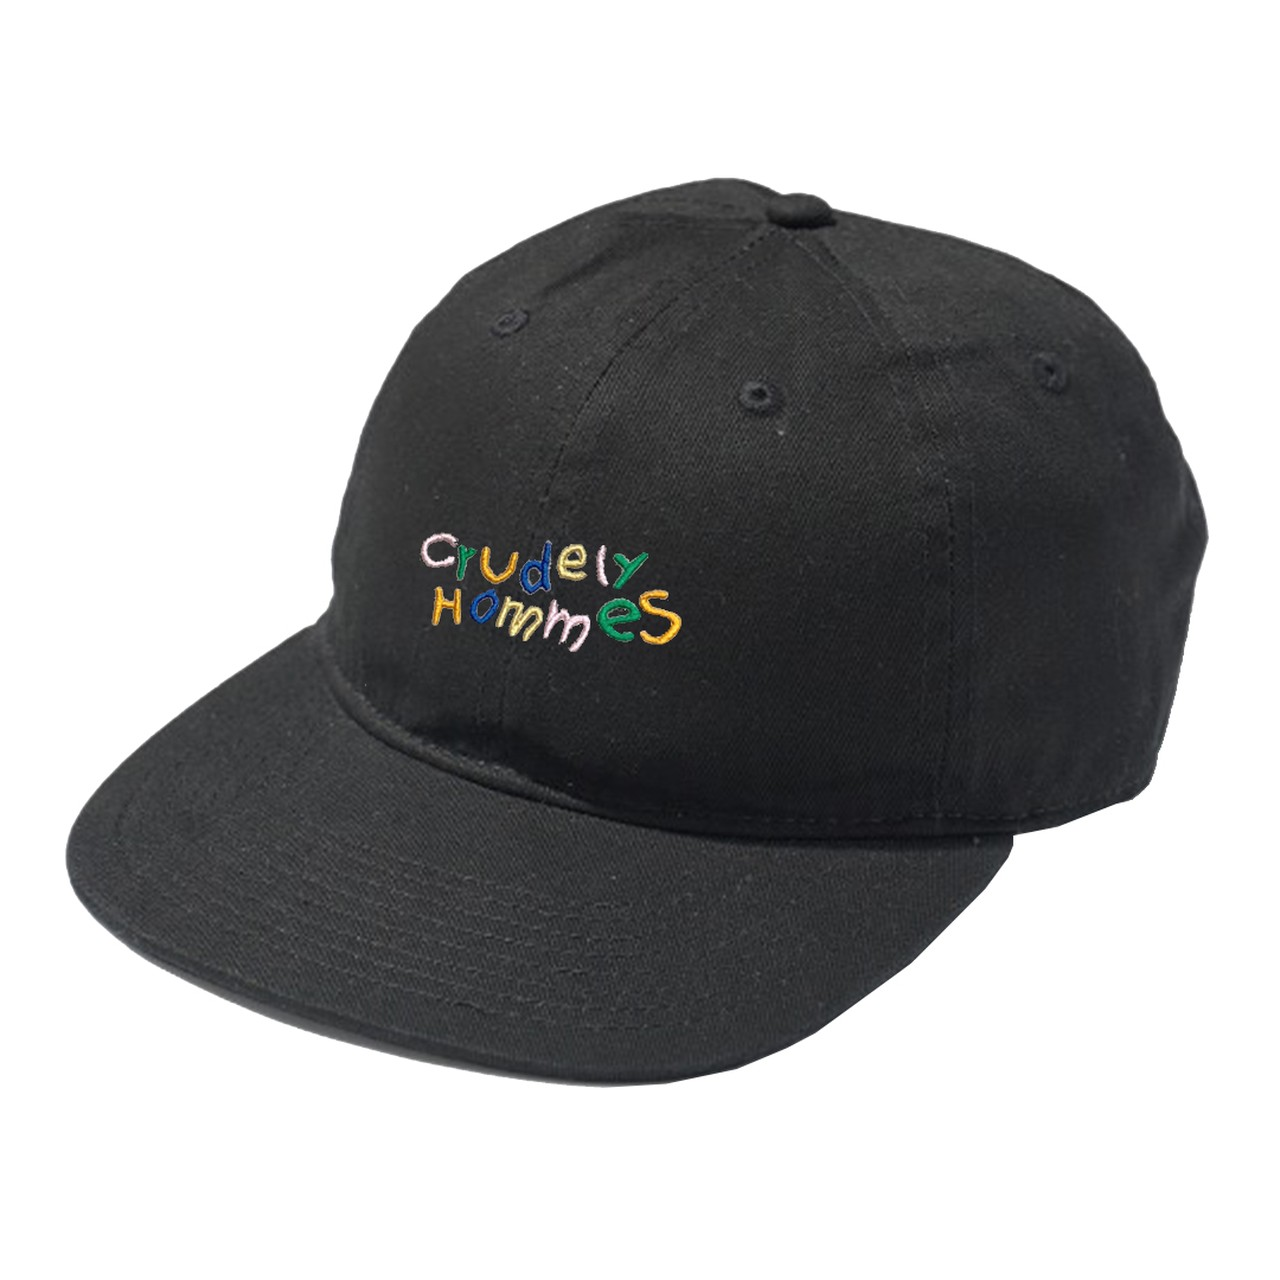 【Crudely Hommes】Rainbow Logo Embroidery Flat Hat